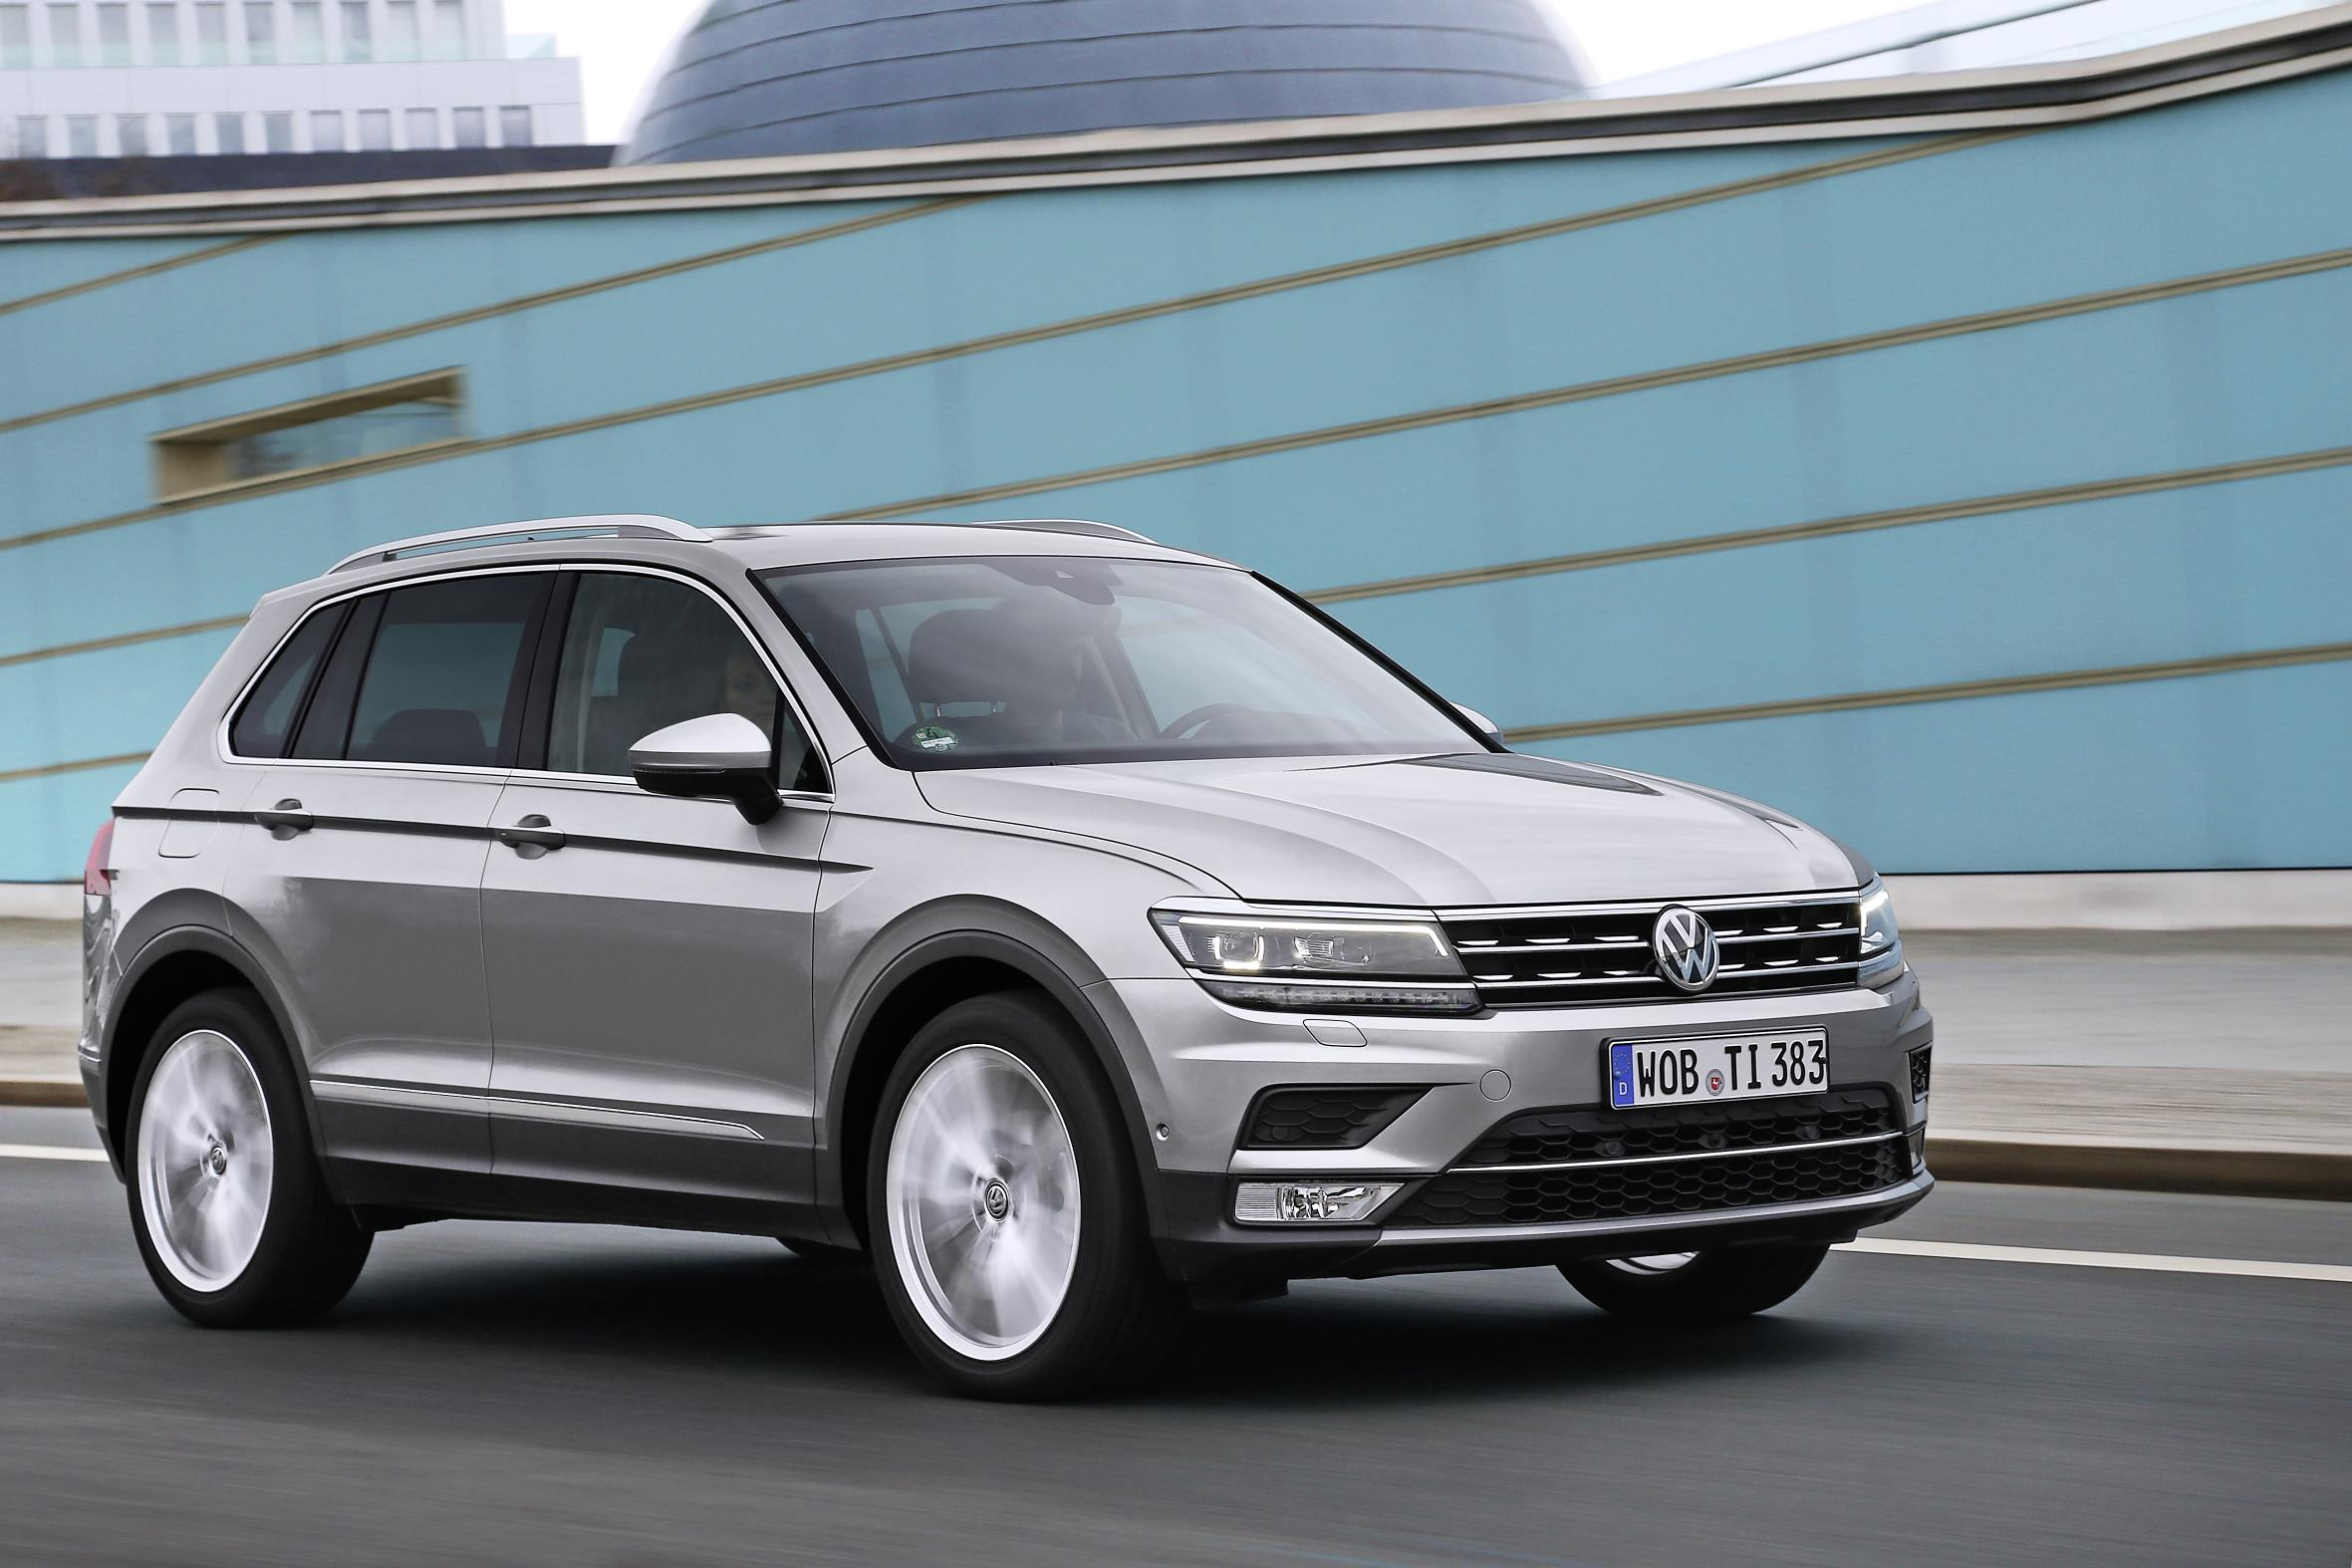 2016 volkswagen tiguan goes on sale in britain from. Black Bedroom Furniture Sets. Home Design Ideas